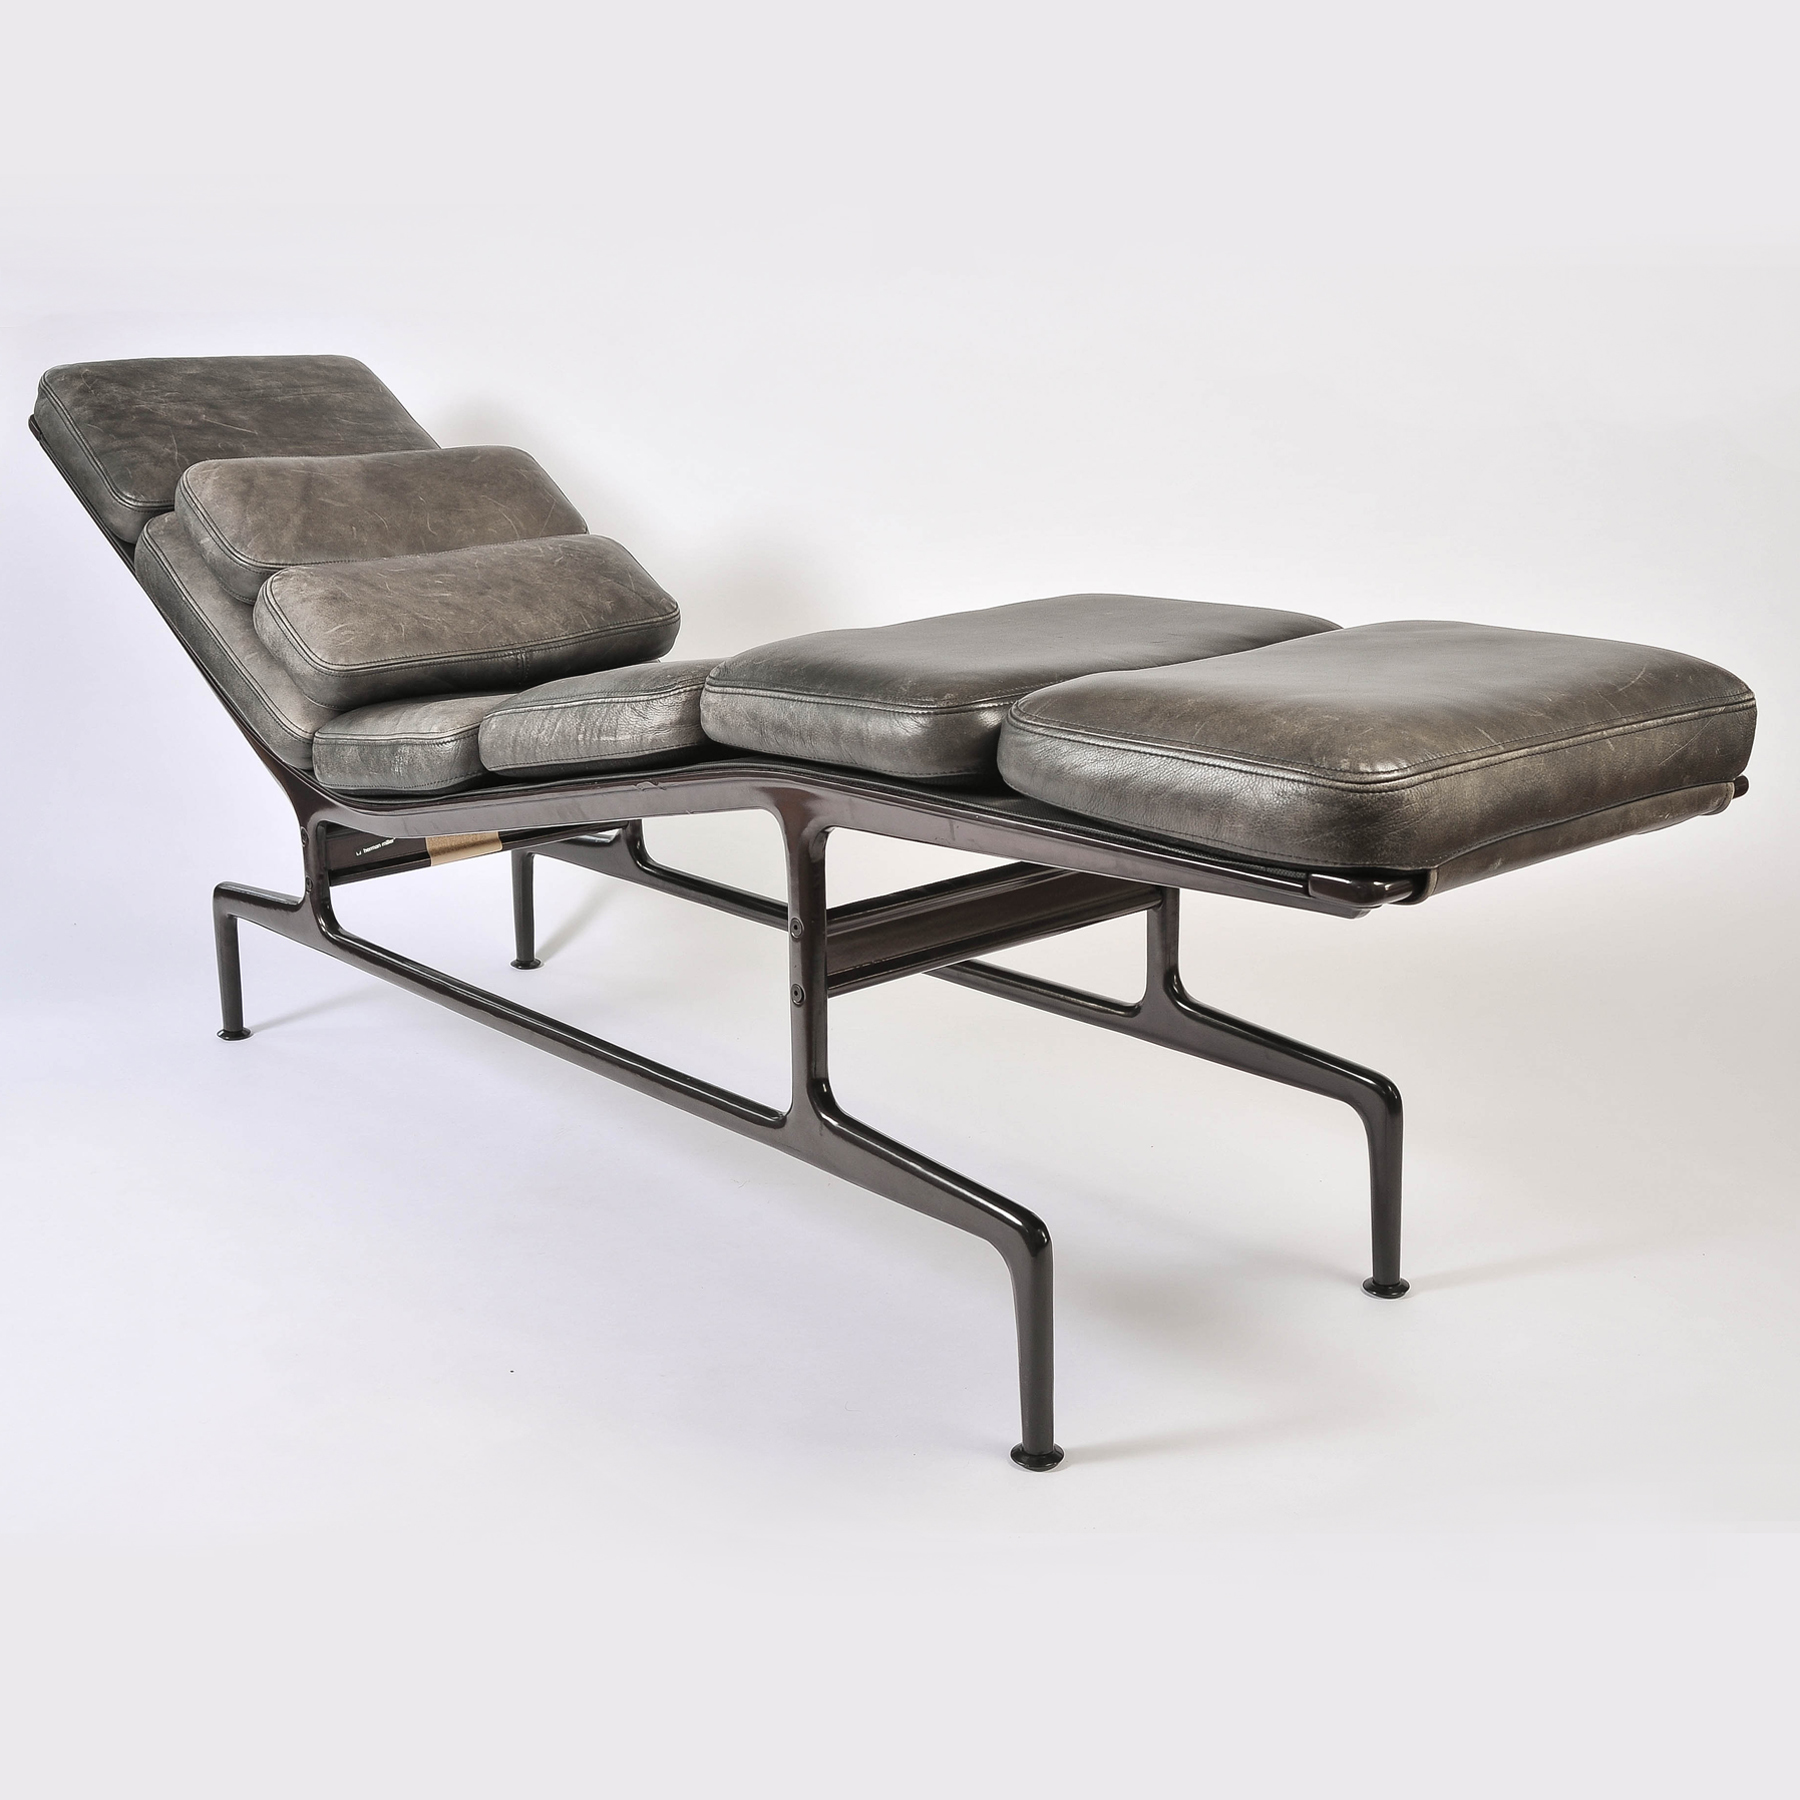 Charles eames 39 billy wilder 39 chaise longue valerie wade for Chaise charles eames tissu